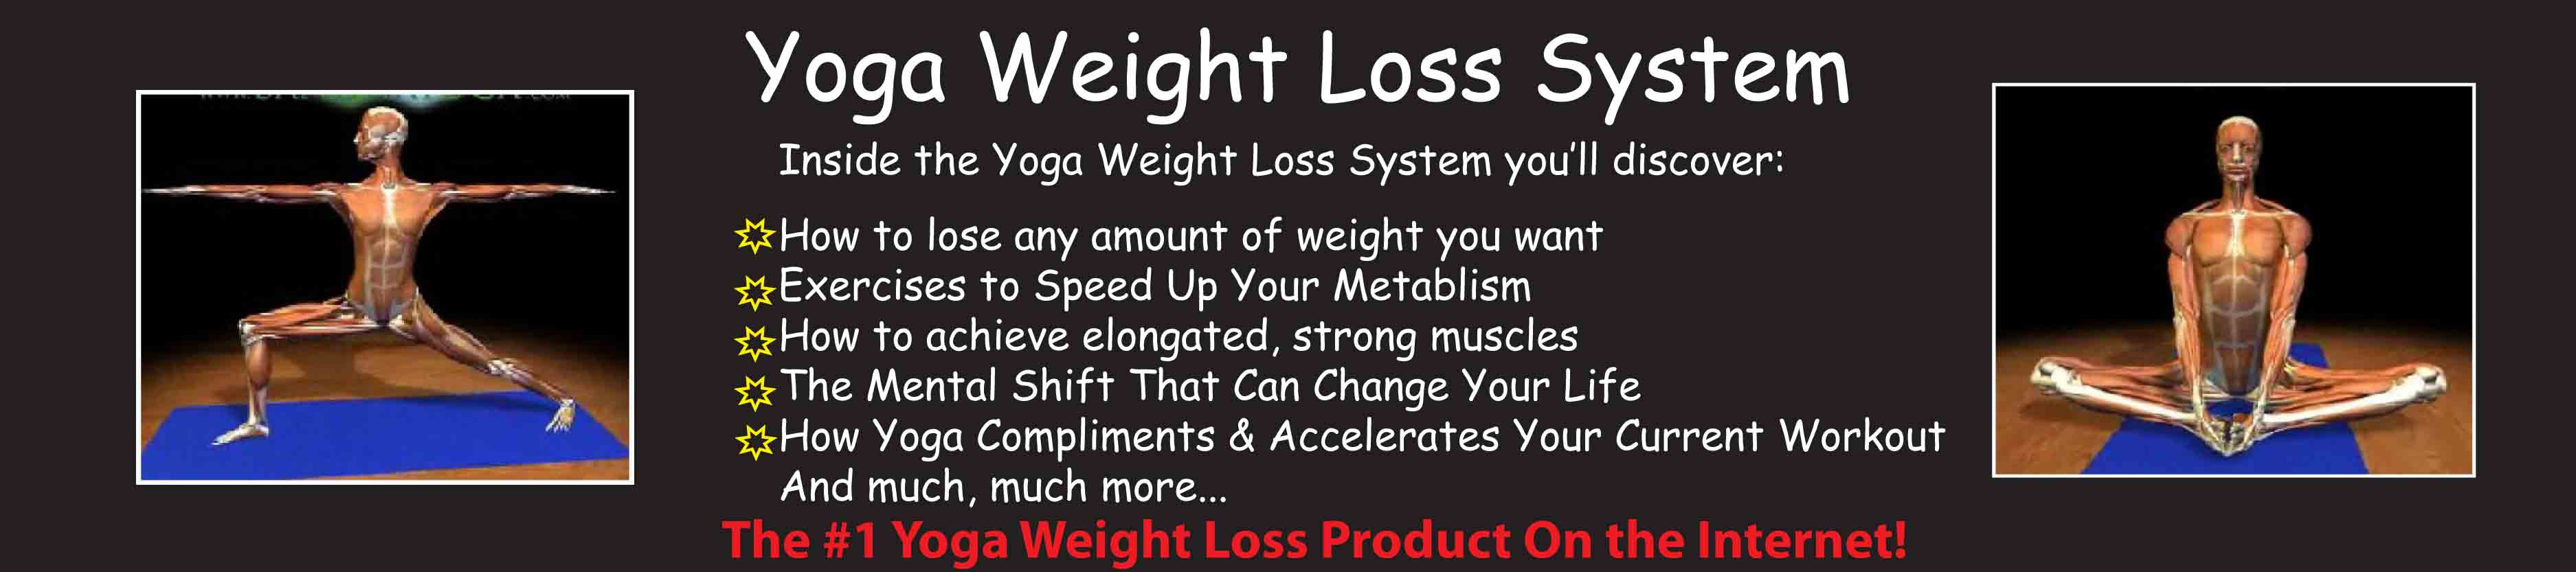 Lose weight with yoga yoga weight loss sytem logo ccuart Gallery